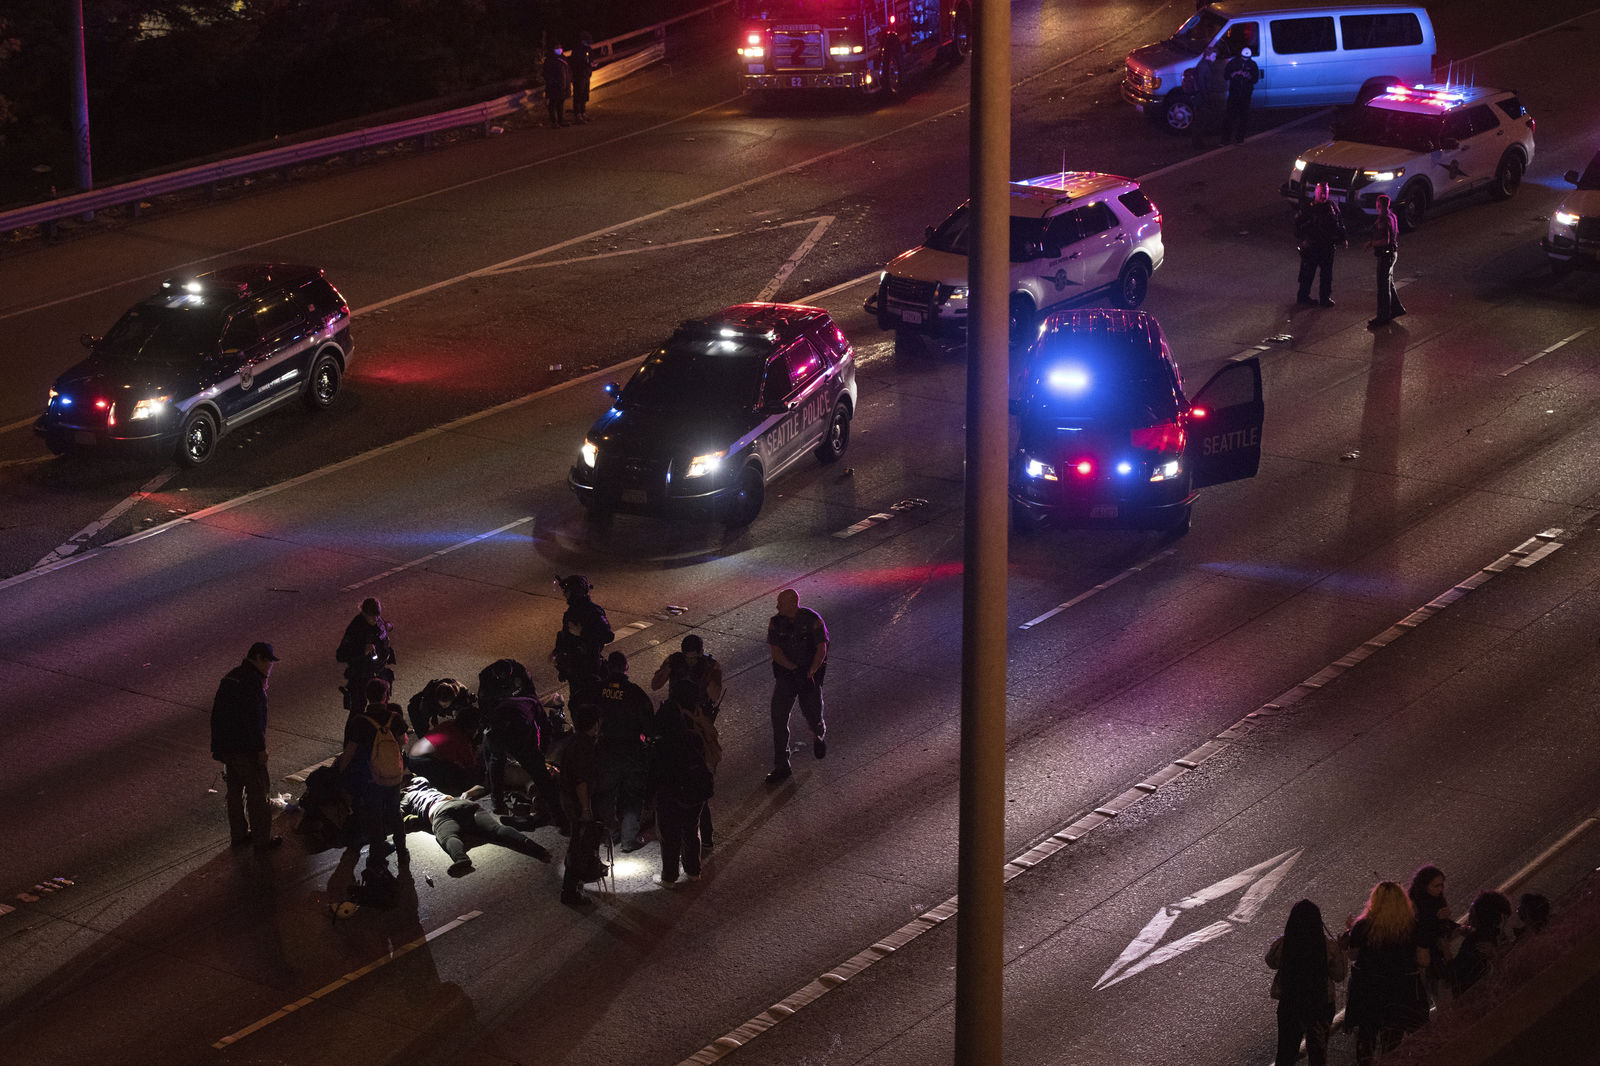 Emergency workers tend to an injured person on the ground after a driver sped through a protest-related closure on the Interstate 5 freeway in Seattle, authorities said early Saturday, July 4, 2020. (James Anderson via AP)